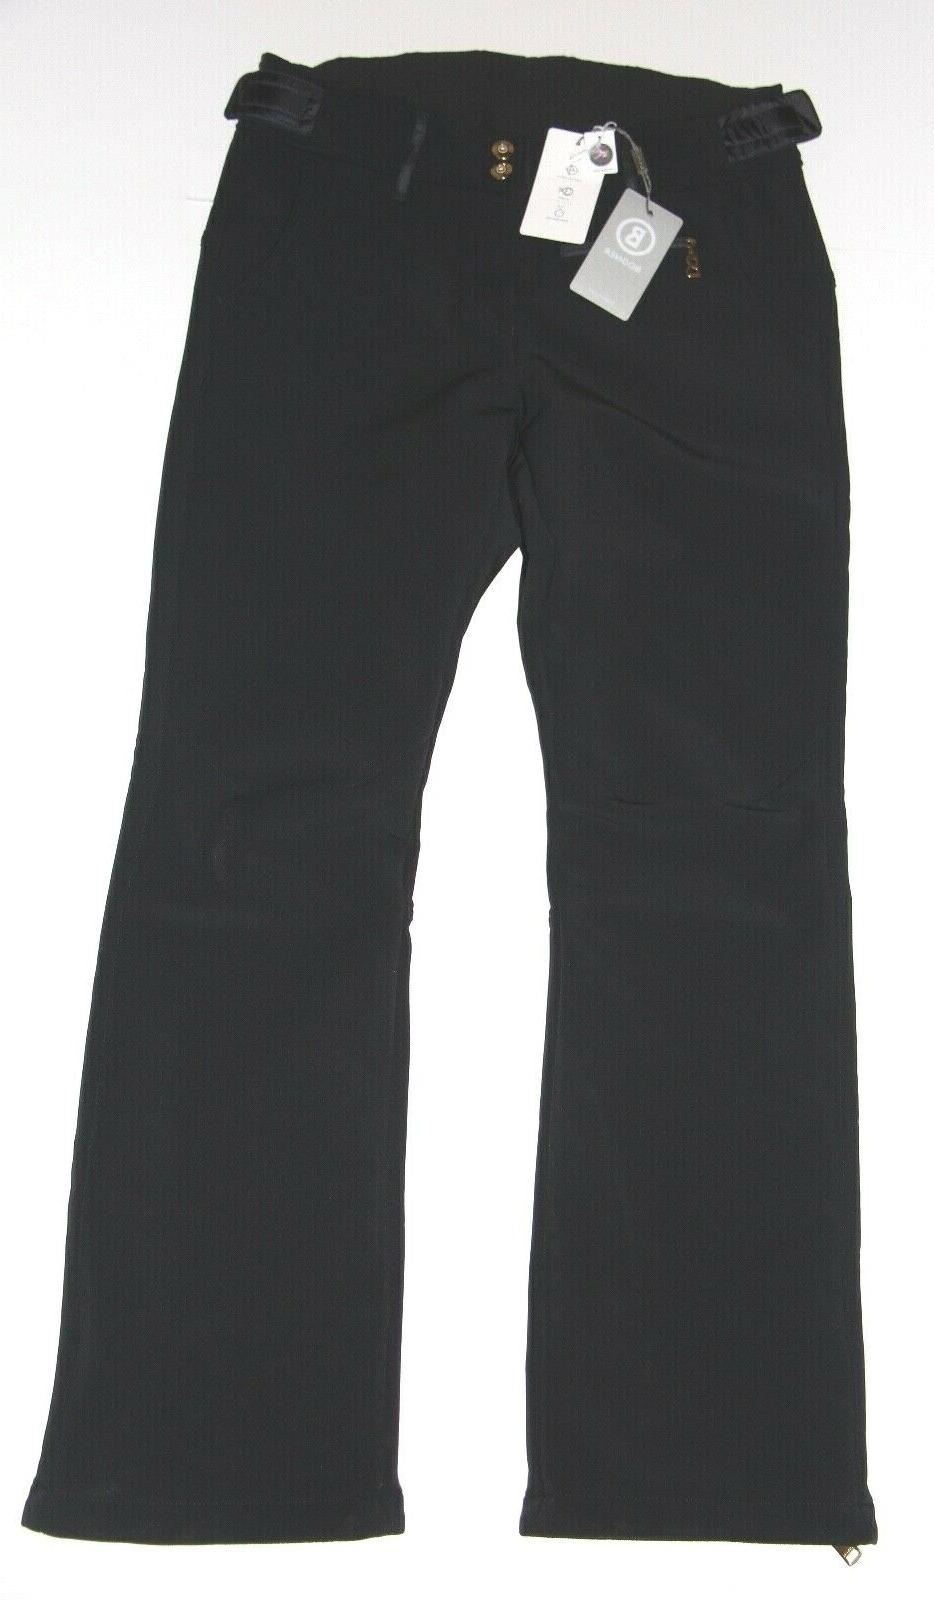 Bogner Hailey Ski Pant - EU Small NEW